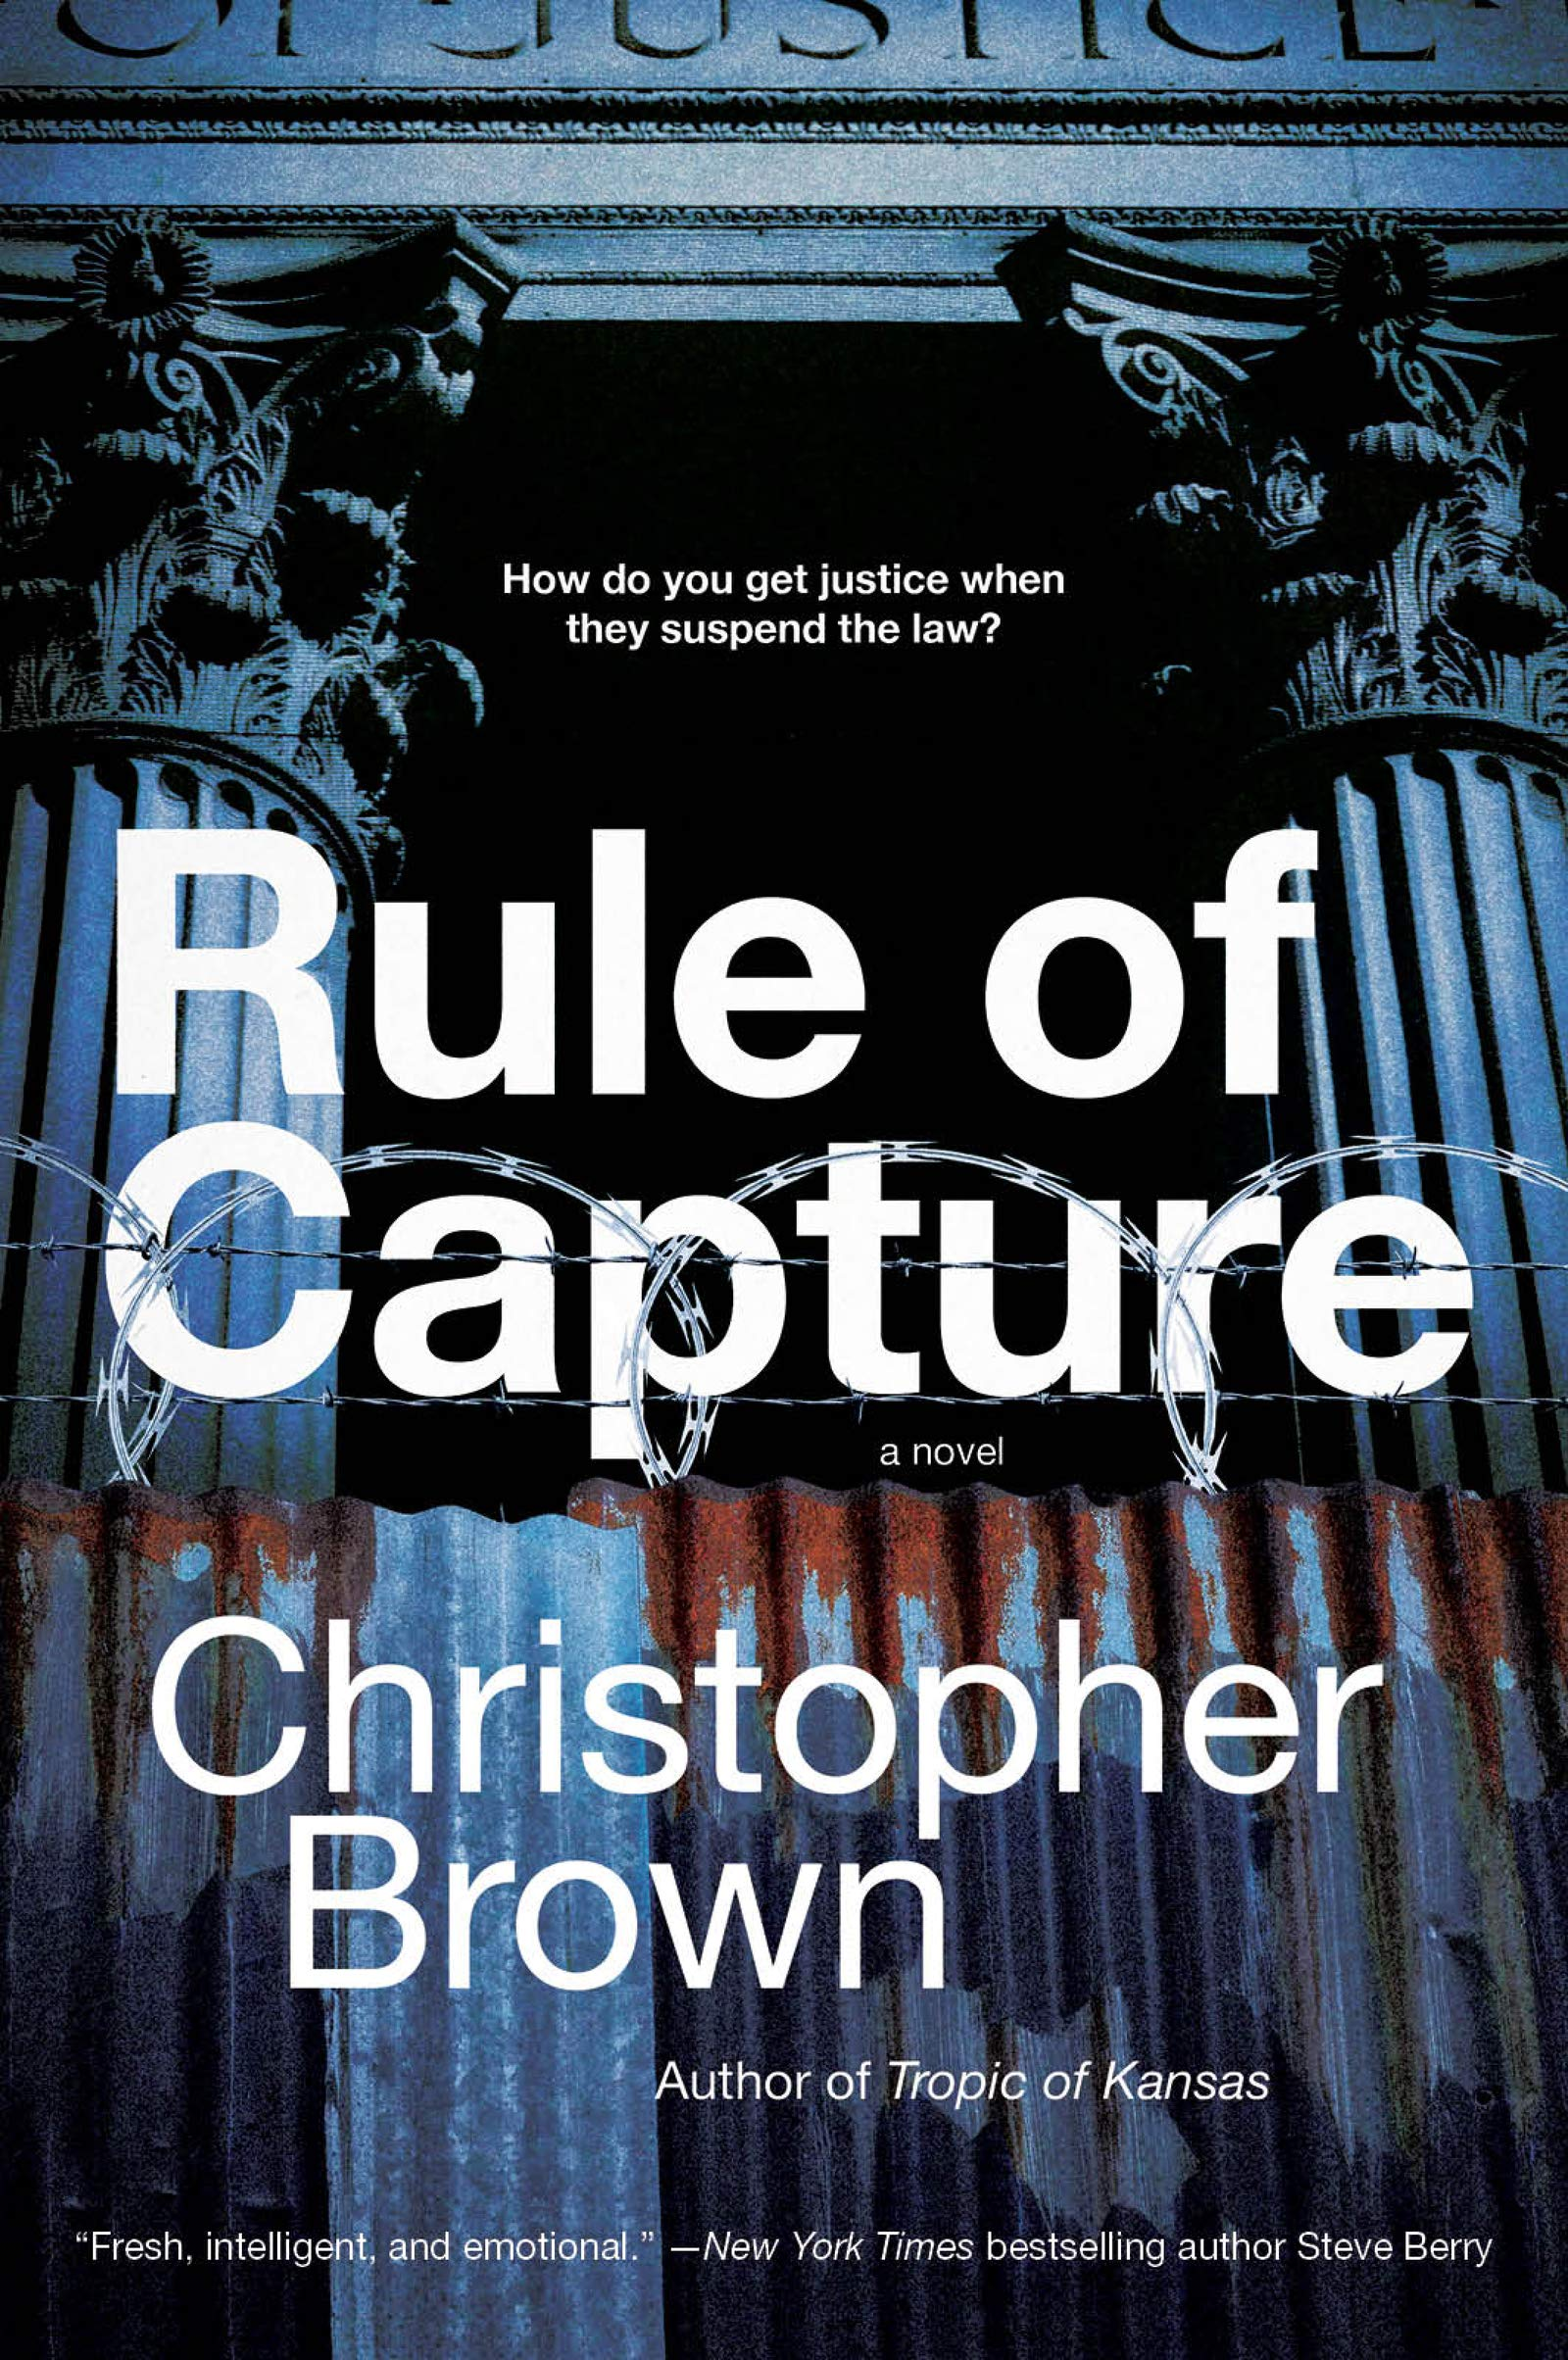 Christopher Brown: Five Things I Learned Writing Rule of Capture